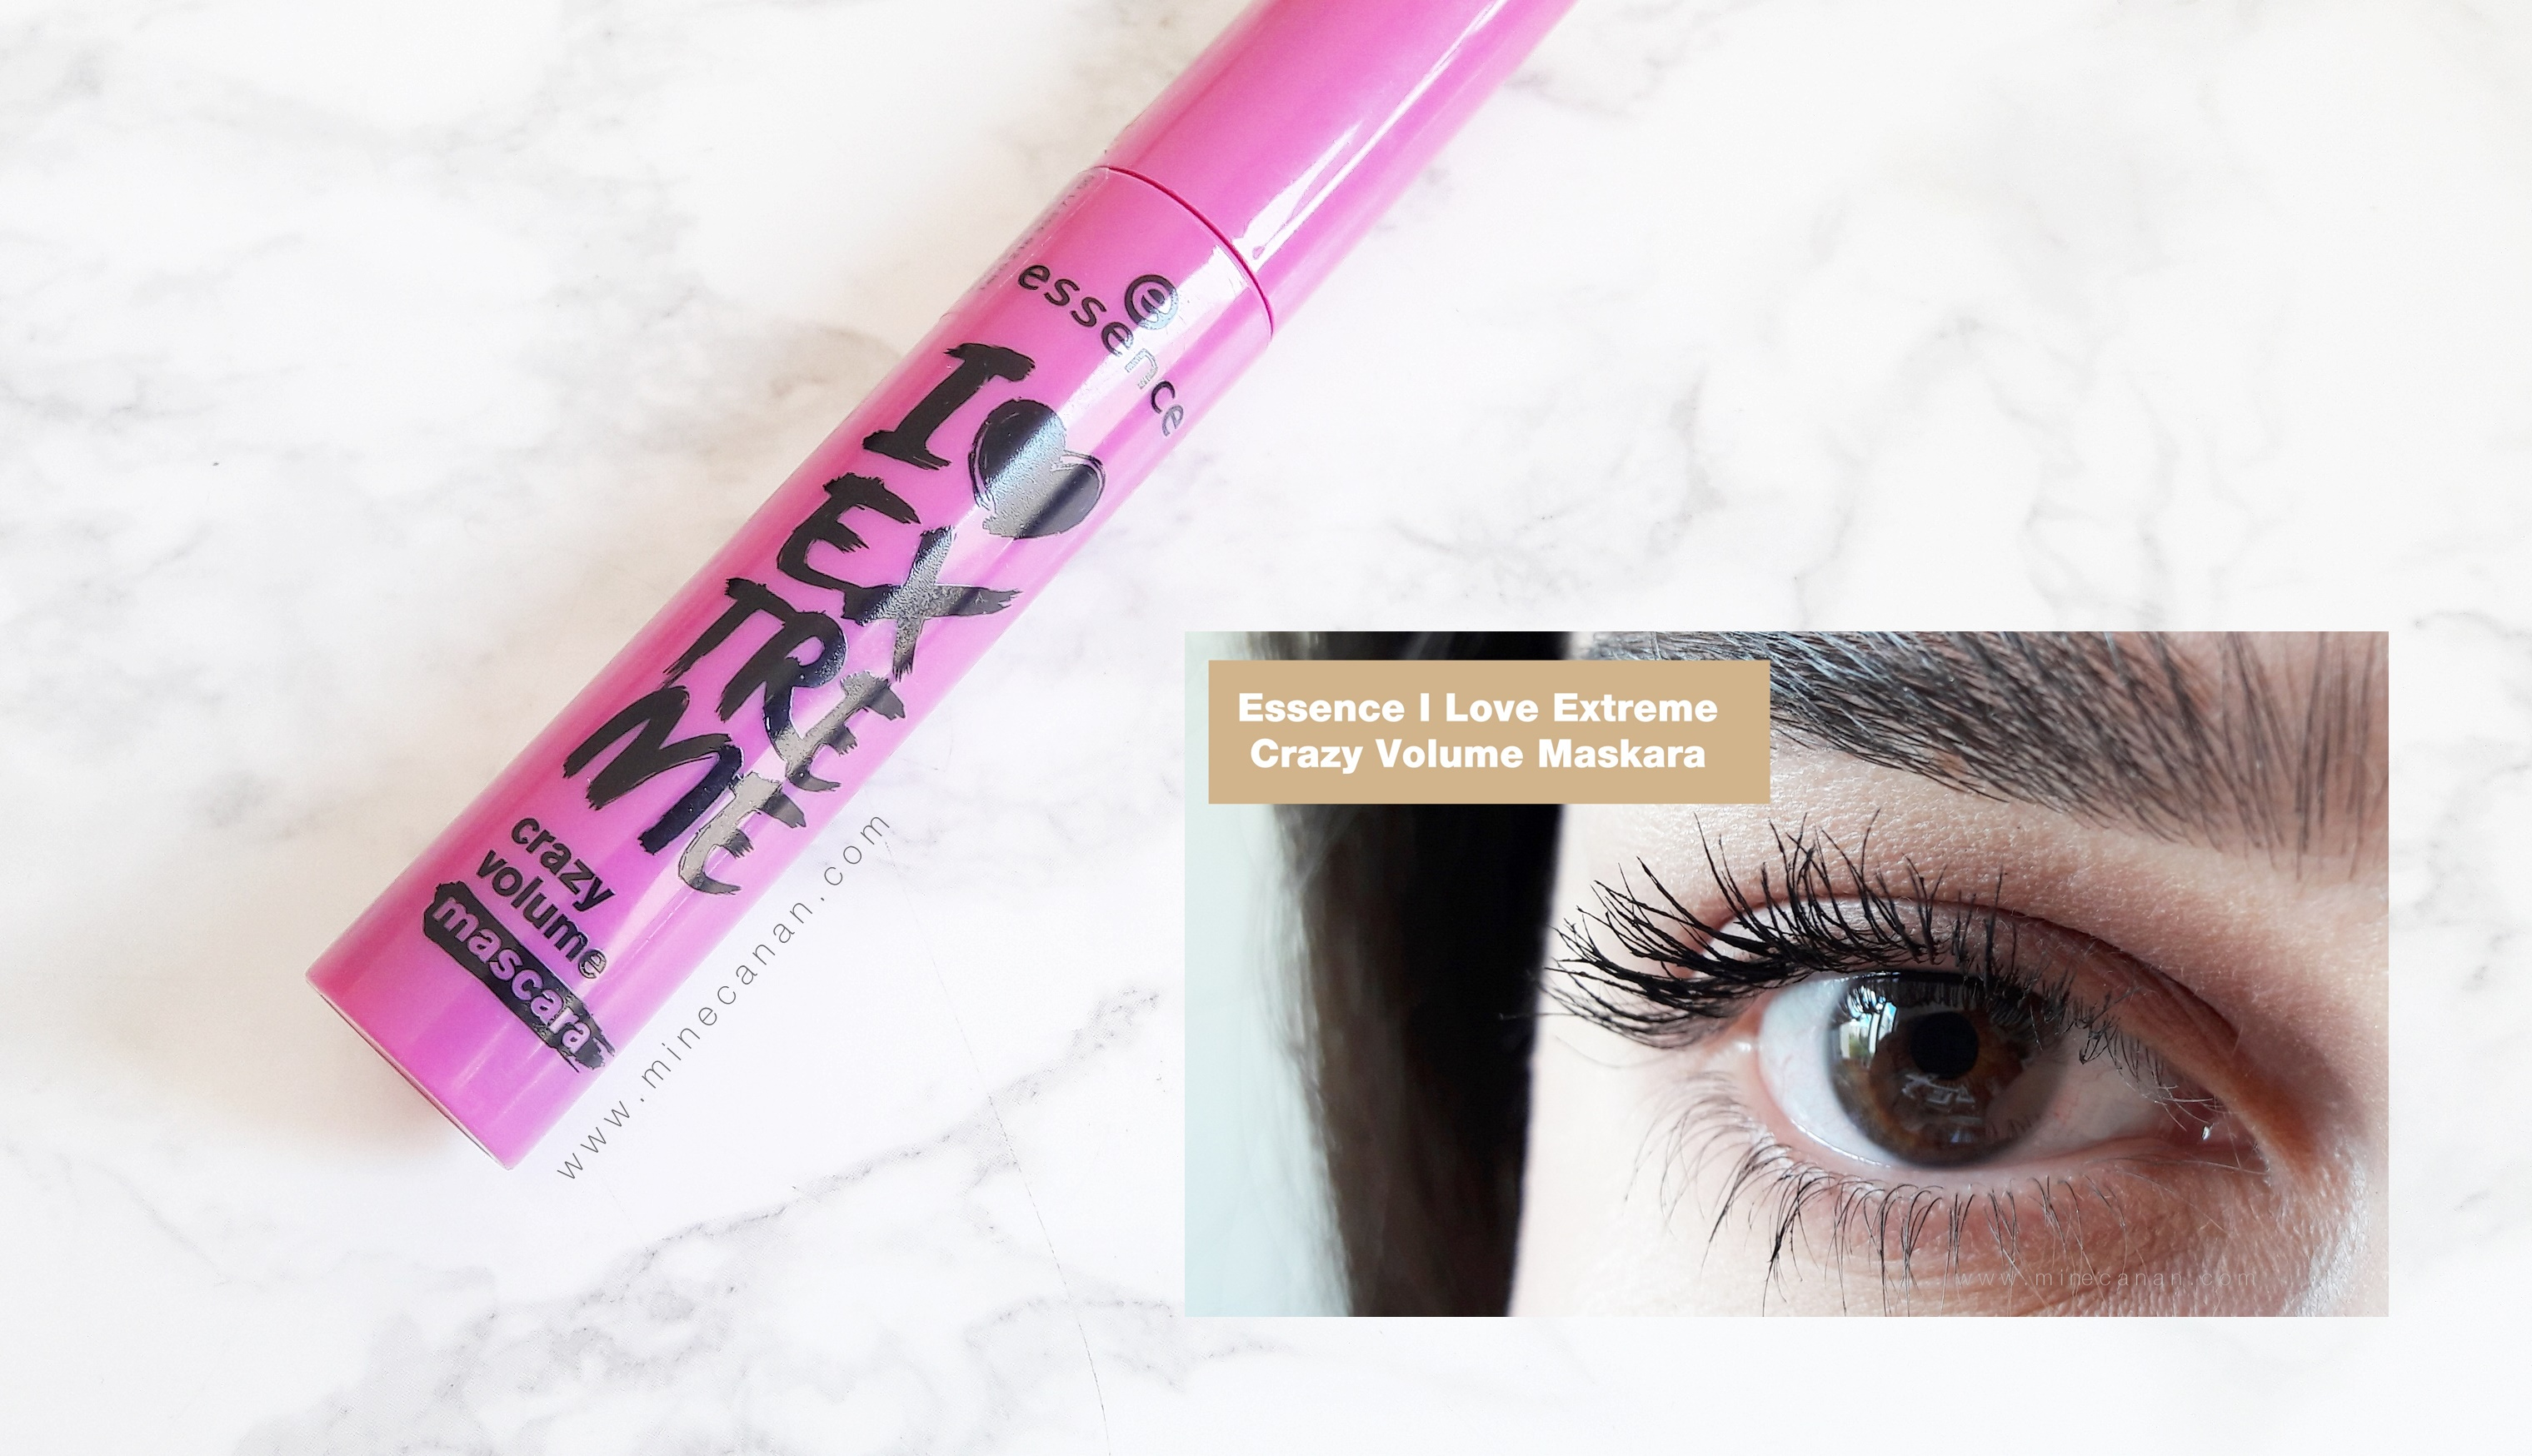 Essence I Love Extreme Crazy Volume Rimel | Blog by Mine Canan